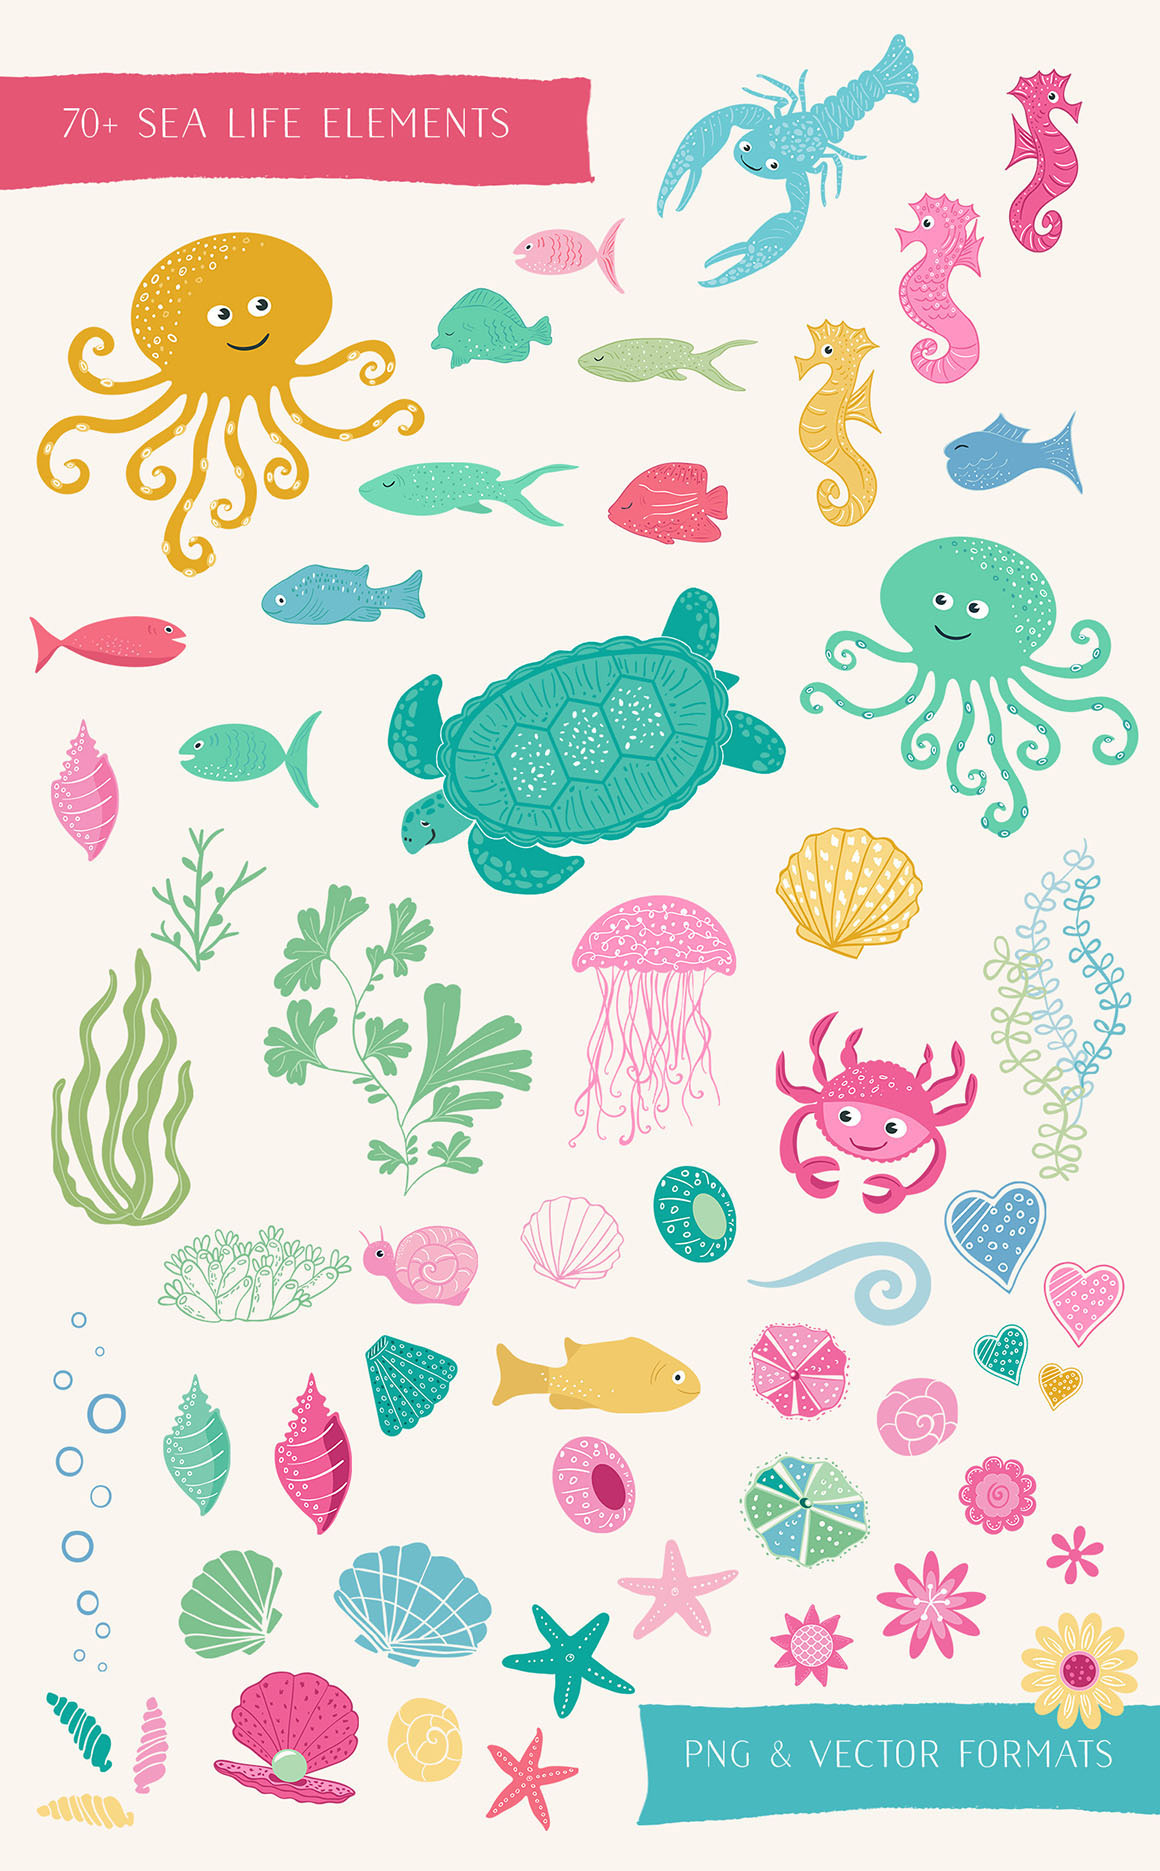 Sea Life Fun Elements and Patterns